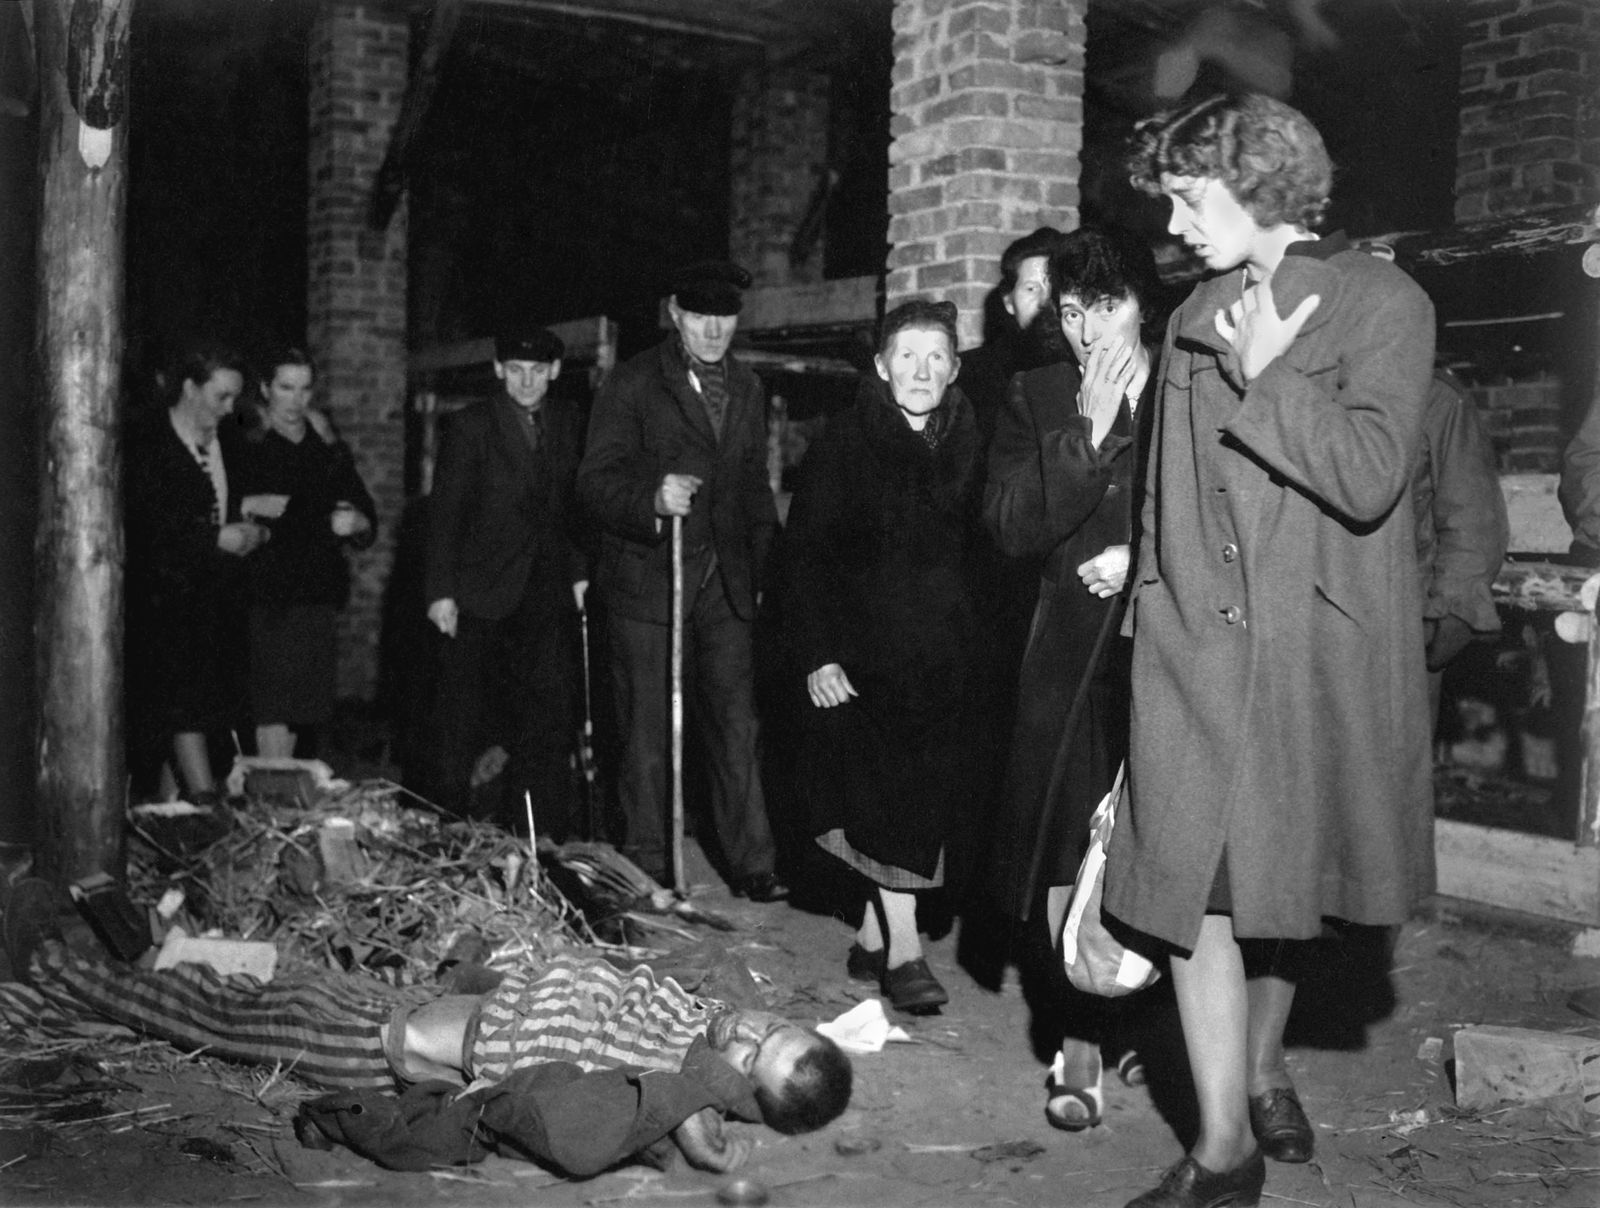 Citizens of Ludwigslust were forced by U.S. Army to view the dead in Wobbelin concentration camp. Ma